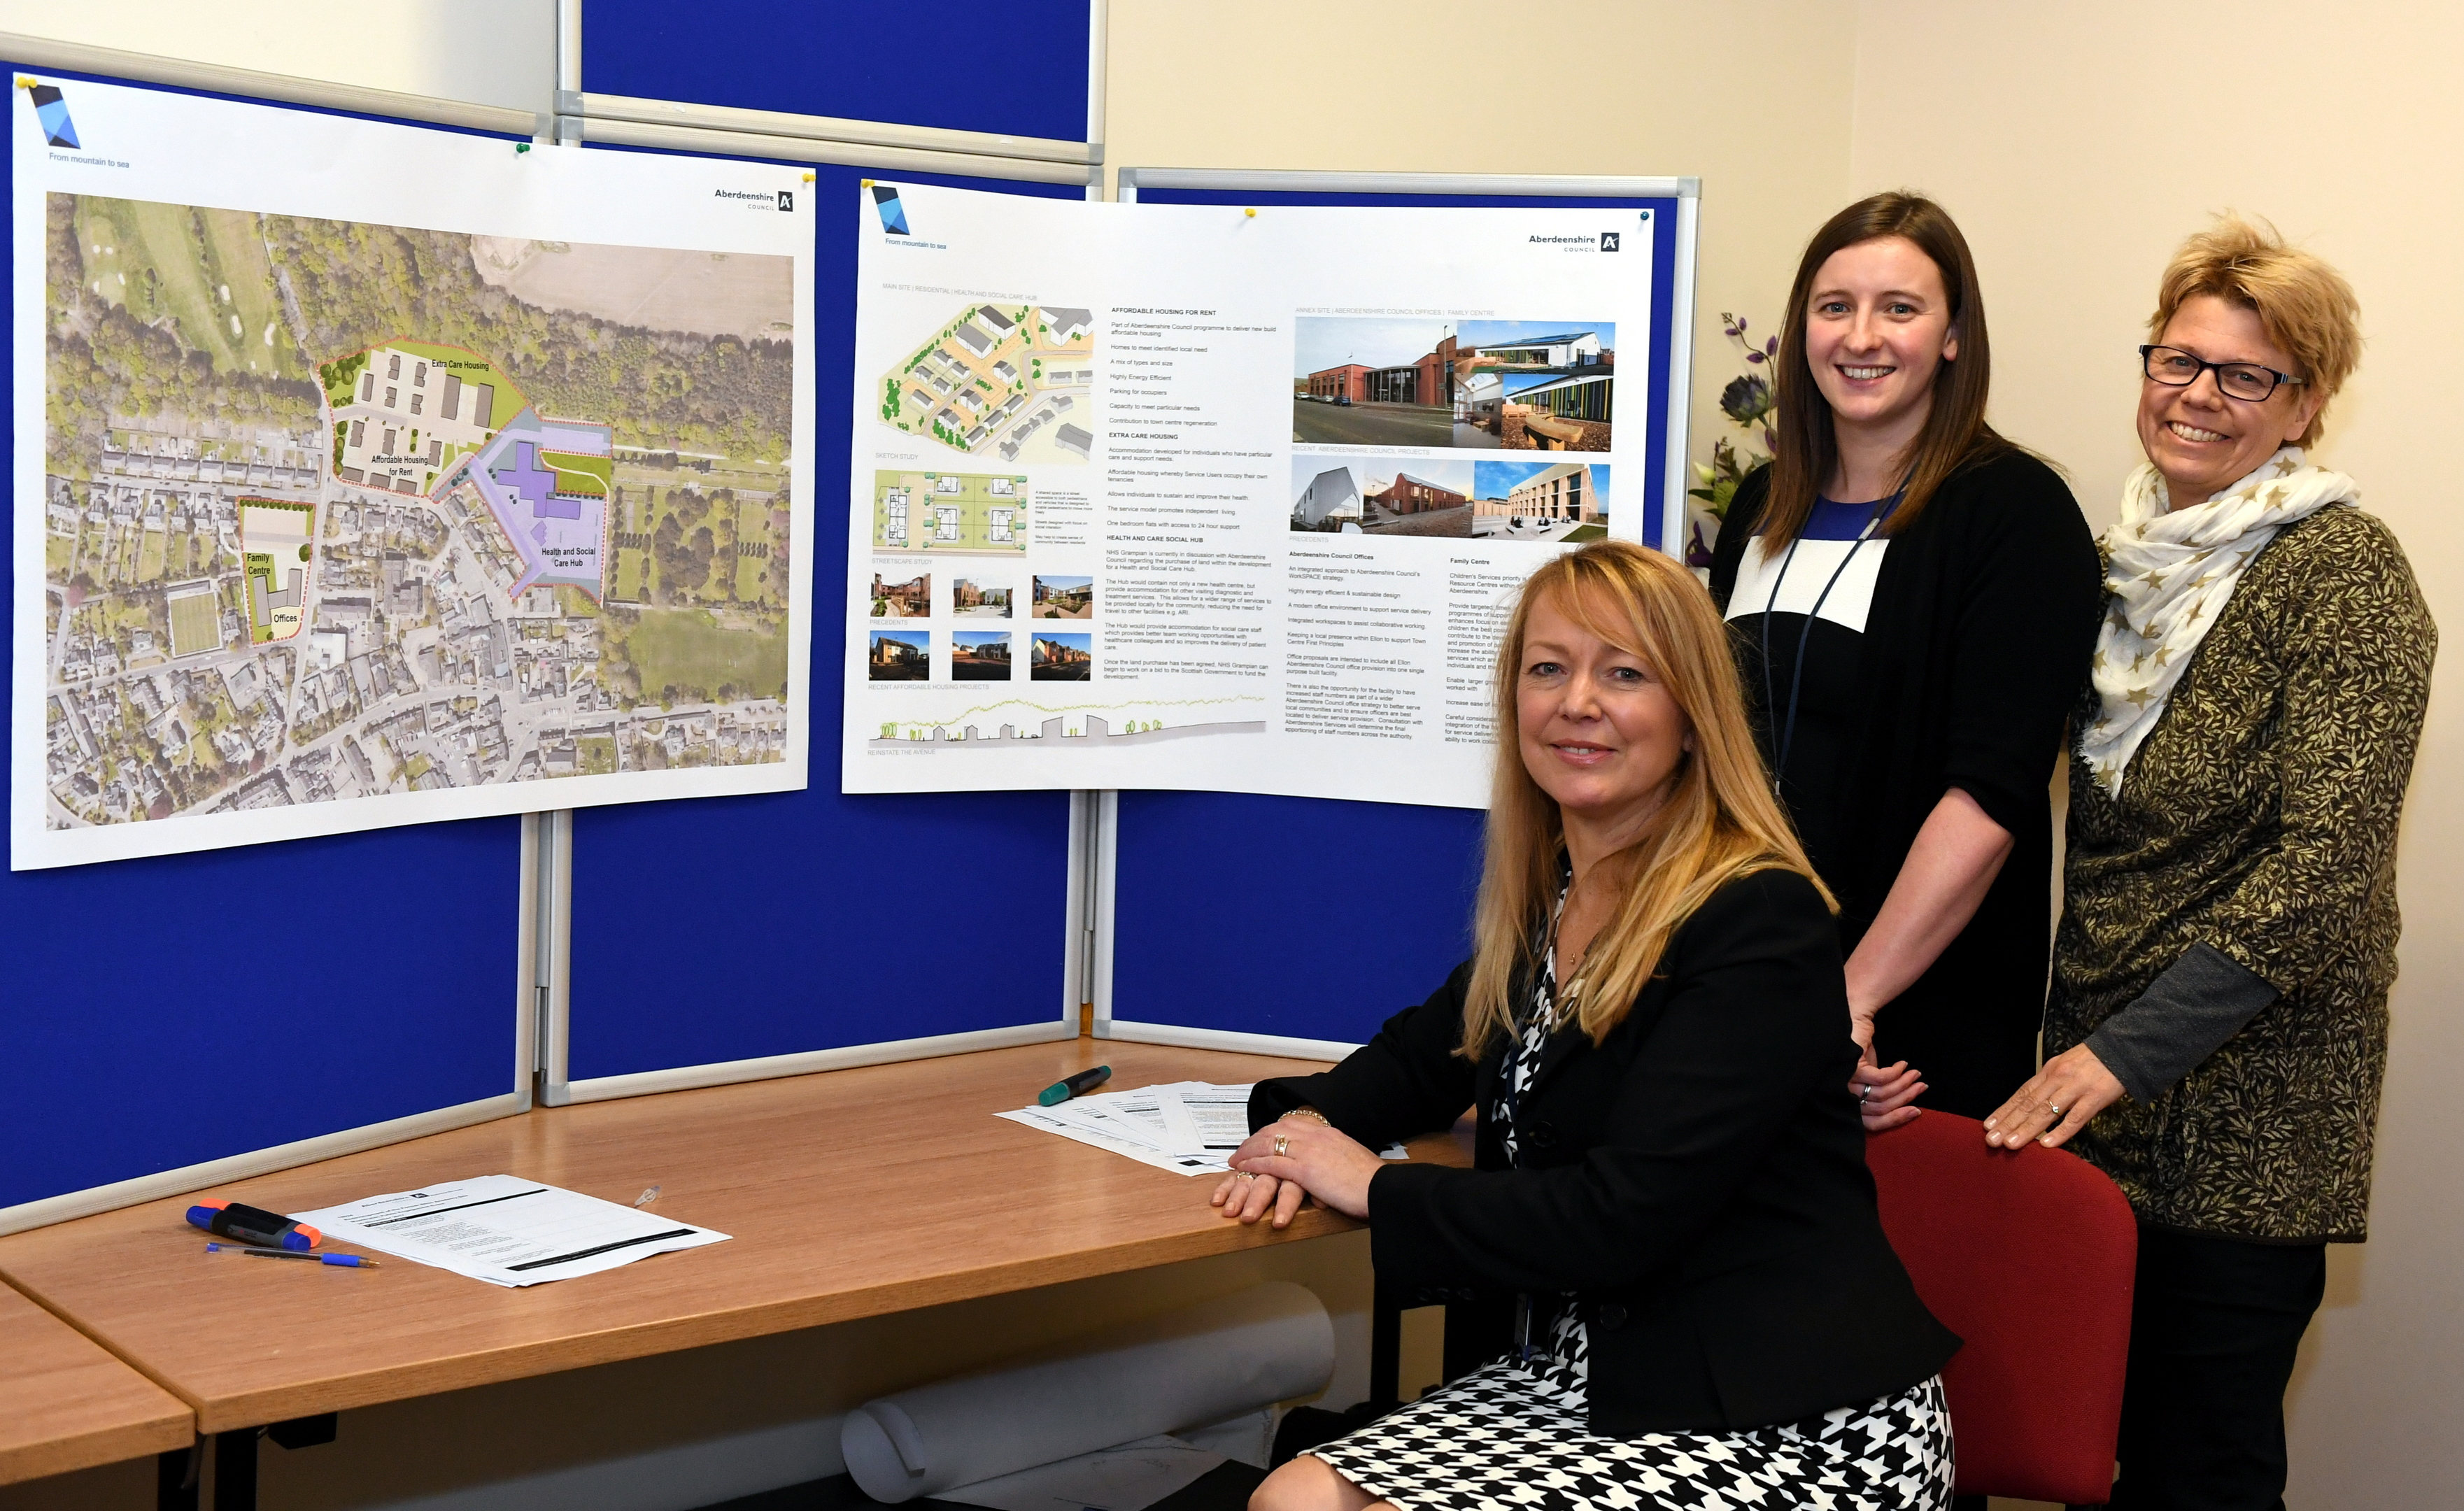 Pictured - Council Area Manager Elaine Brown (seated) with Council Architect Alison Mitchell (left) and Councillor Anouk Kloppert (right).    Picture by Kami Thomson